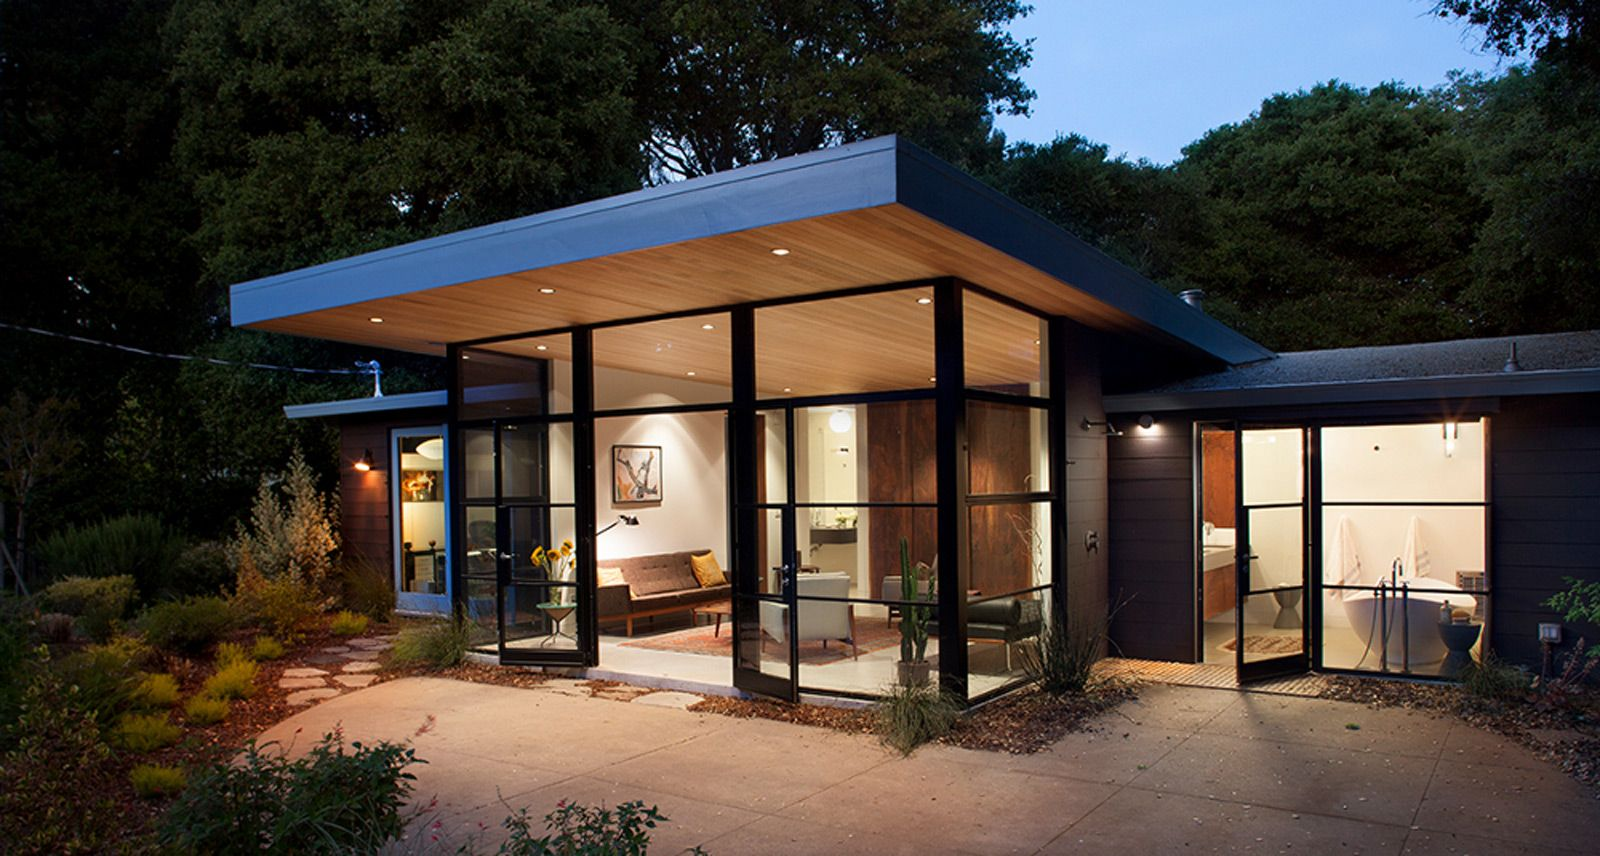 Windows Roof Overhangs And Headers Build Blog Architecture Building Design House Exterior